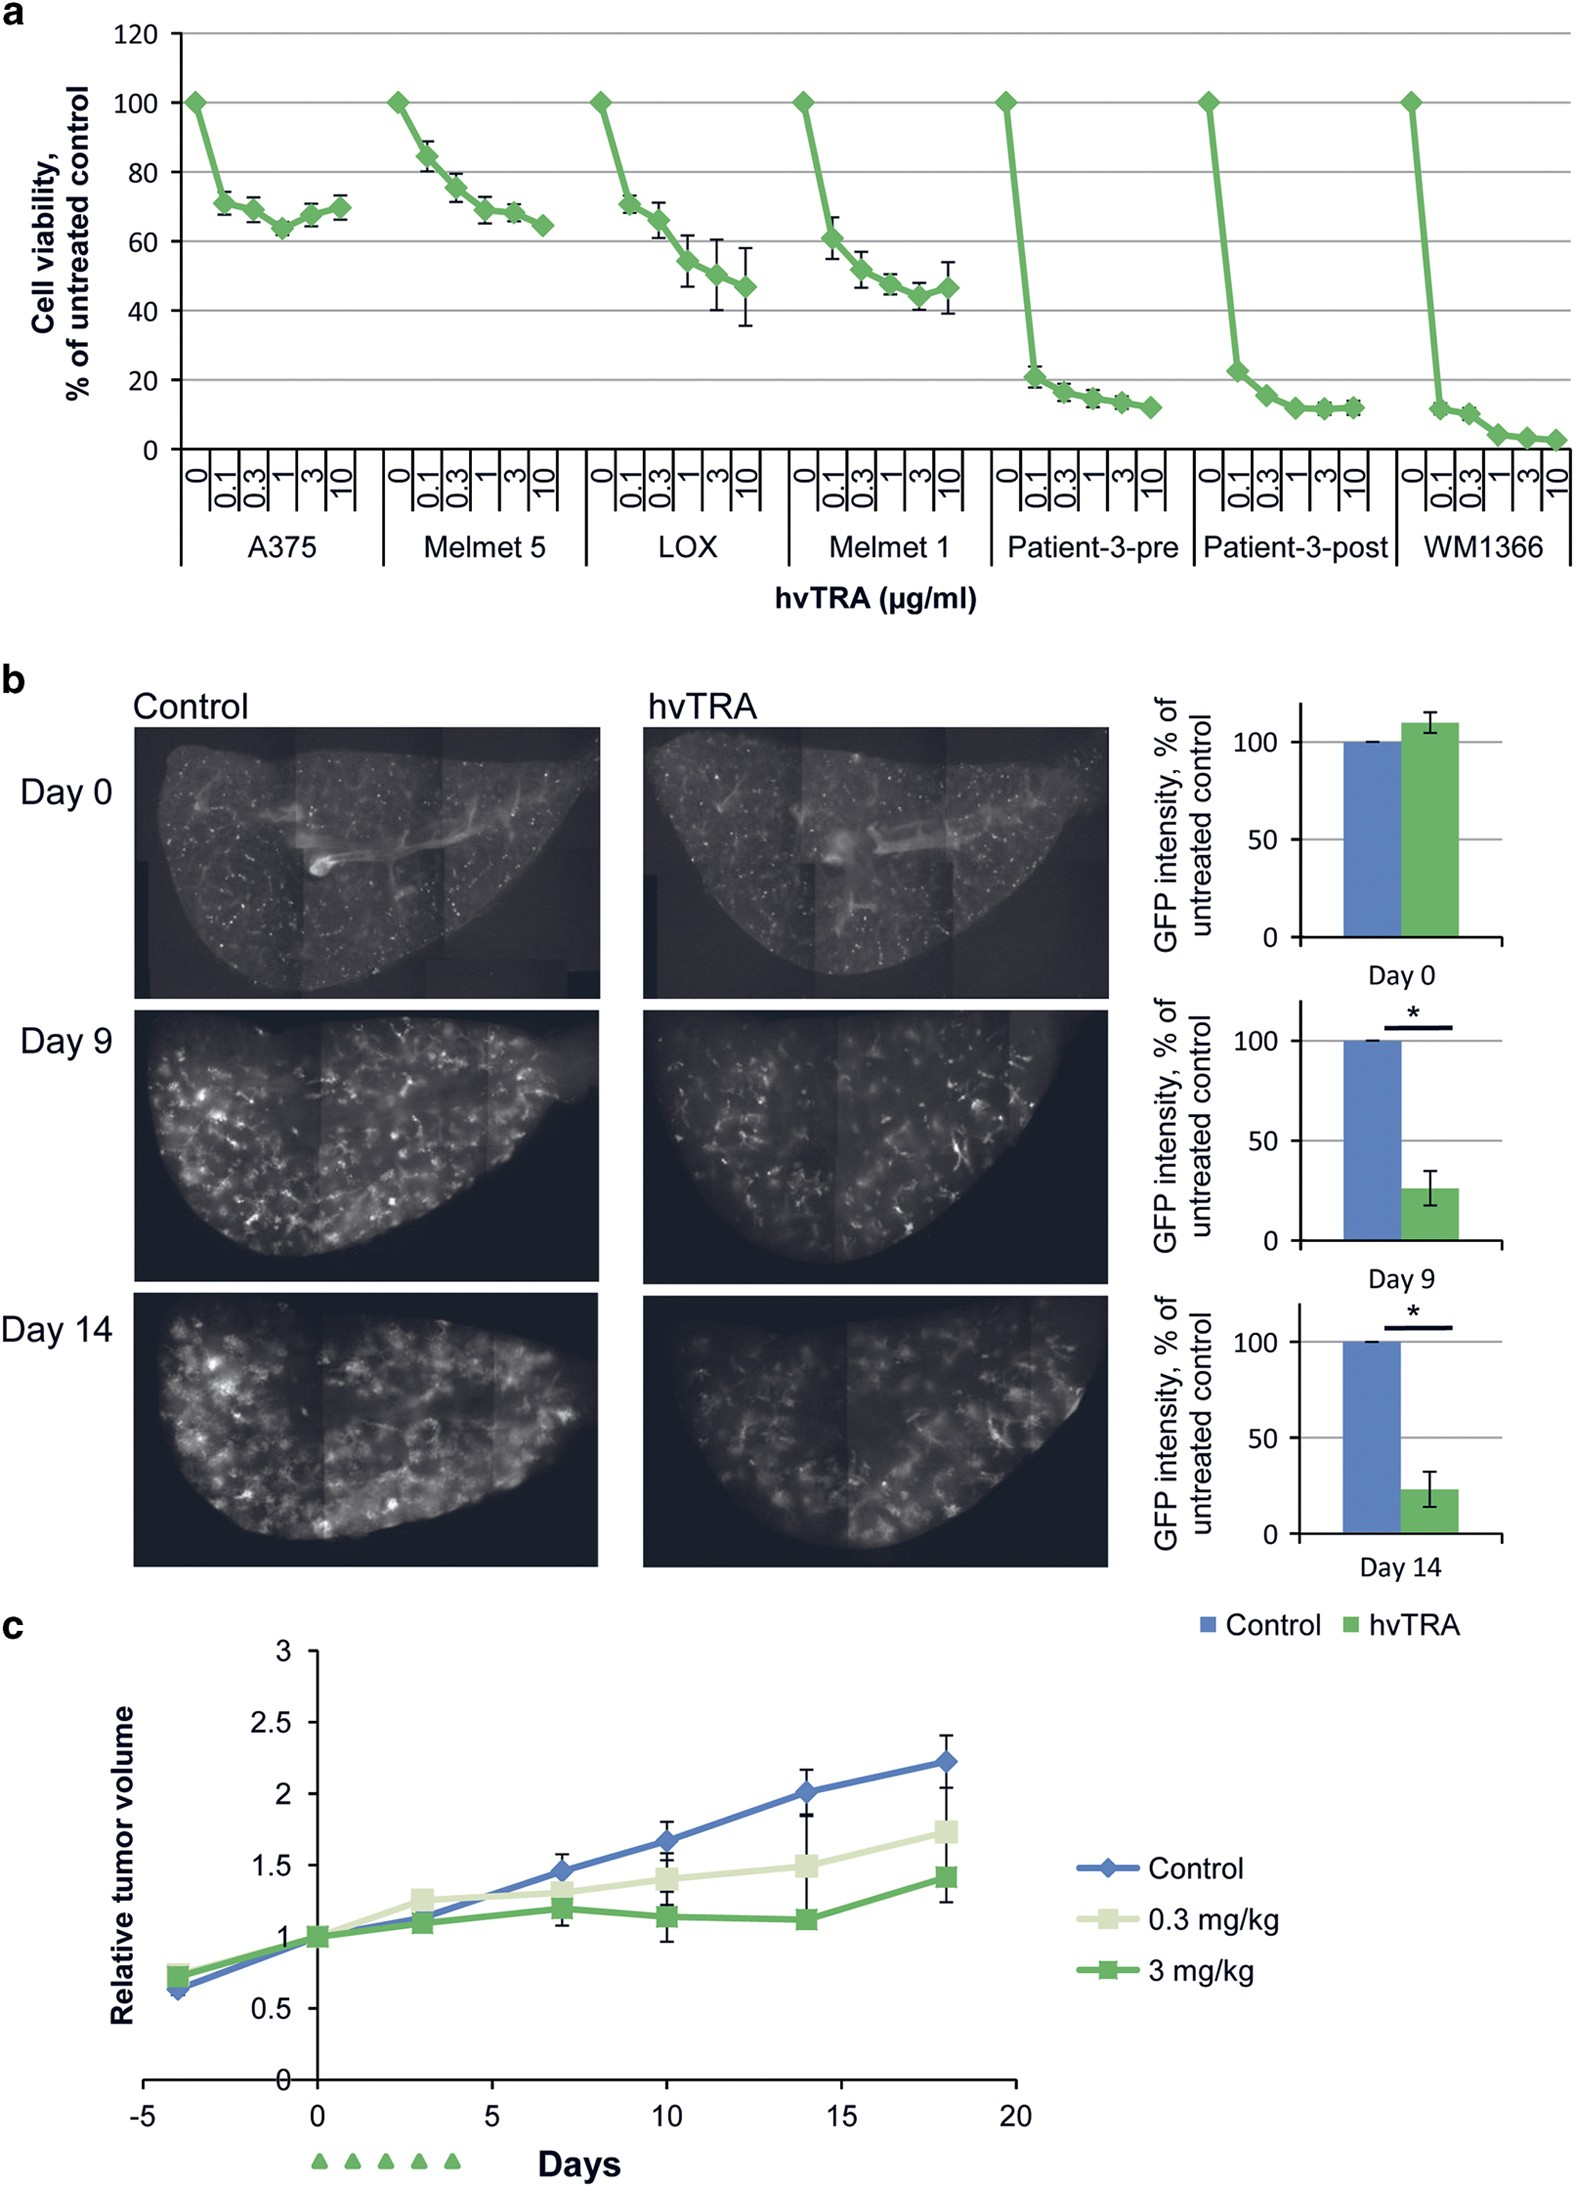 Ana Walczak Nude hvtra, a novel trail receptor agonist, induces apoptosis and